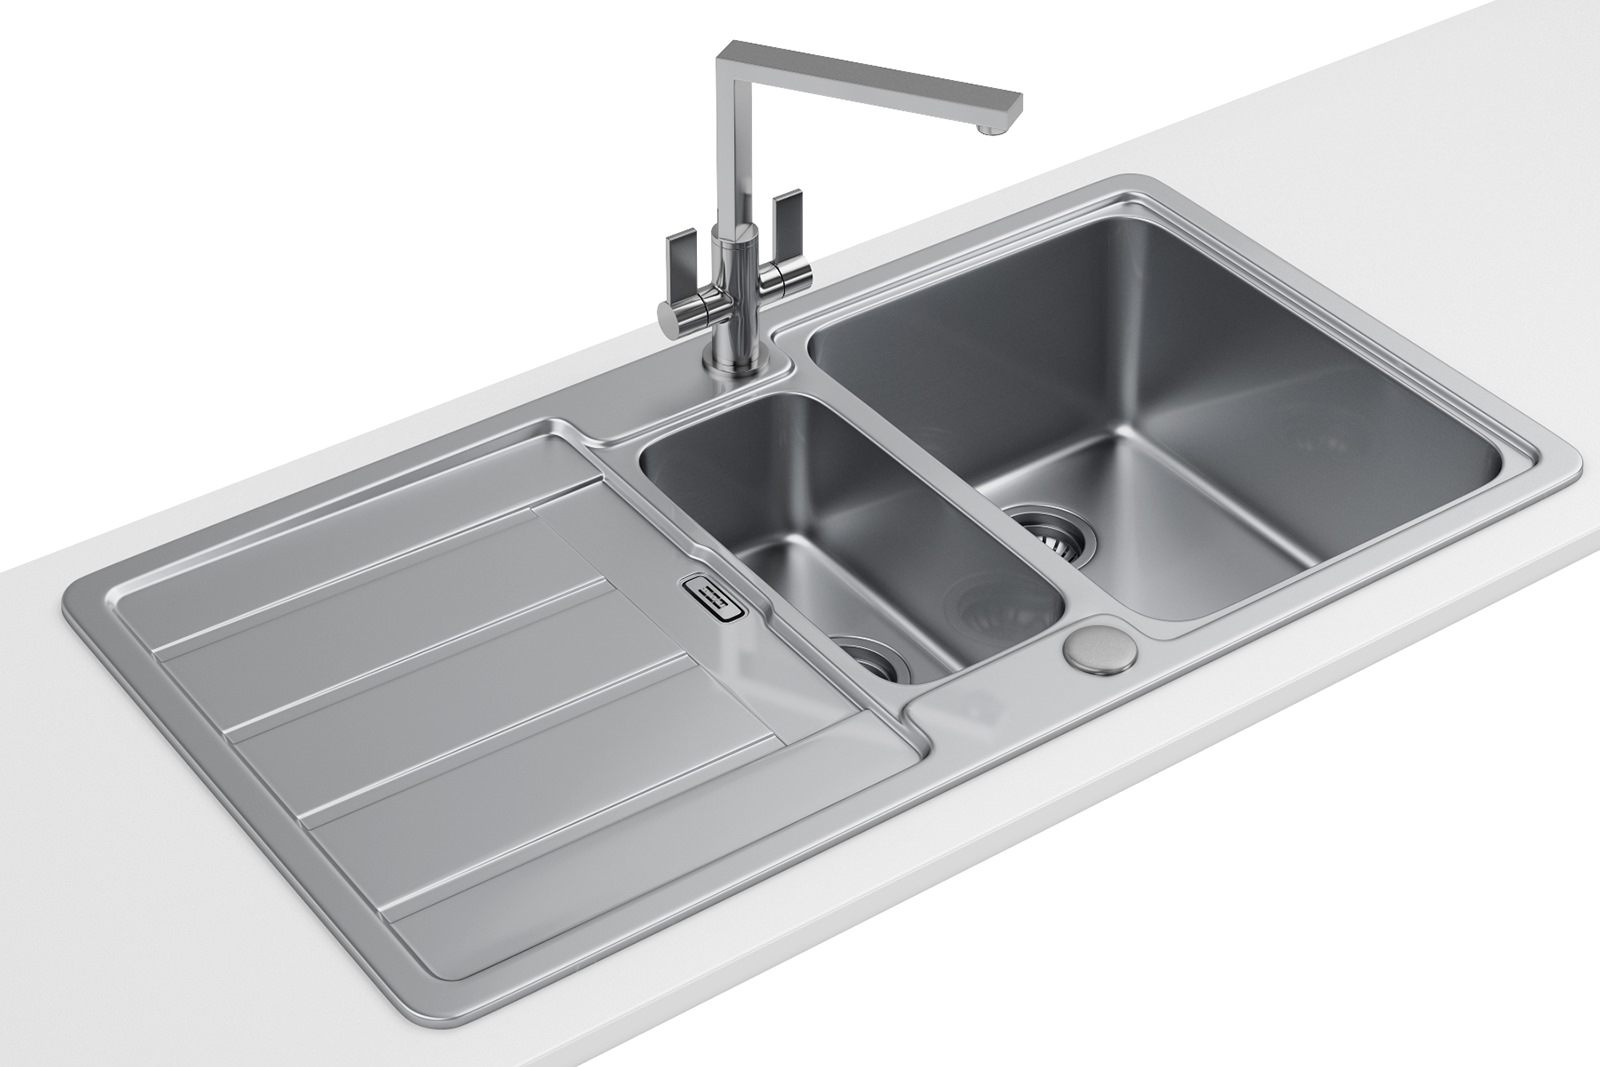 franke kitchen sinks buy metal cabinets hydros hdx 654 stainless steel 1.5 bowl ...